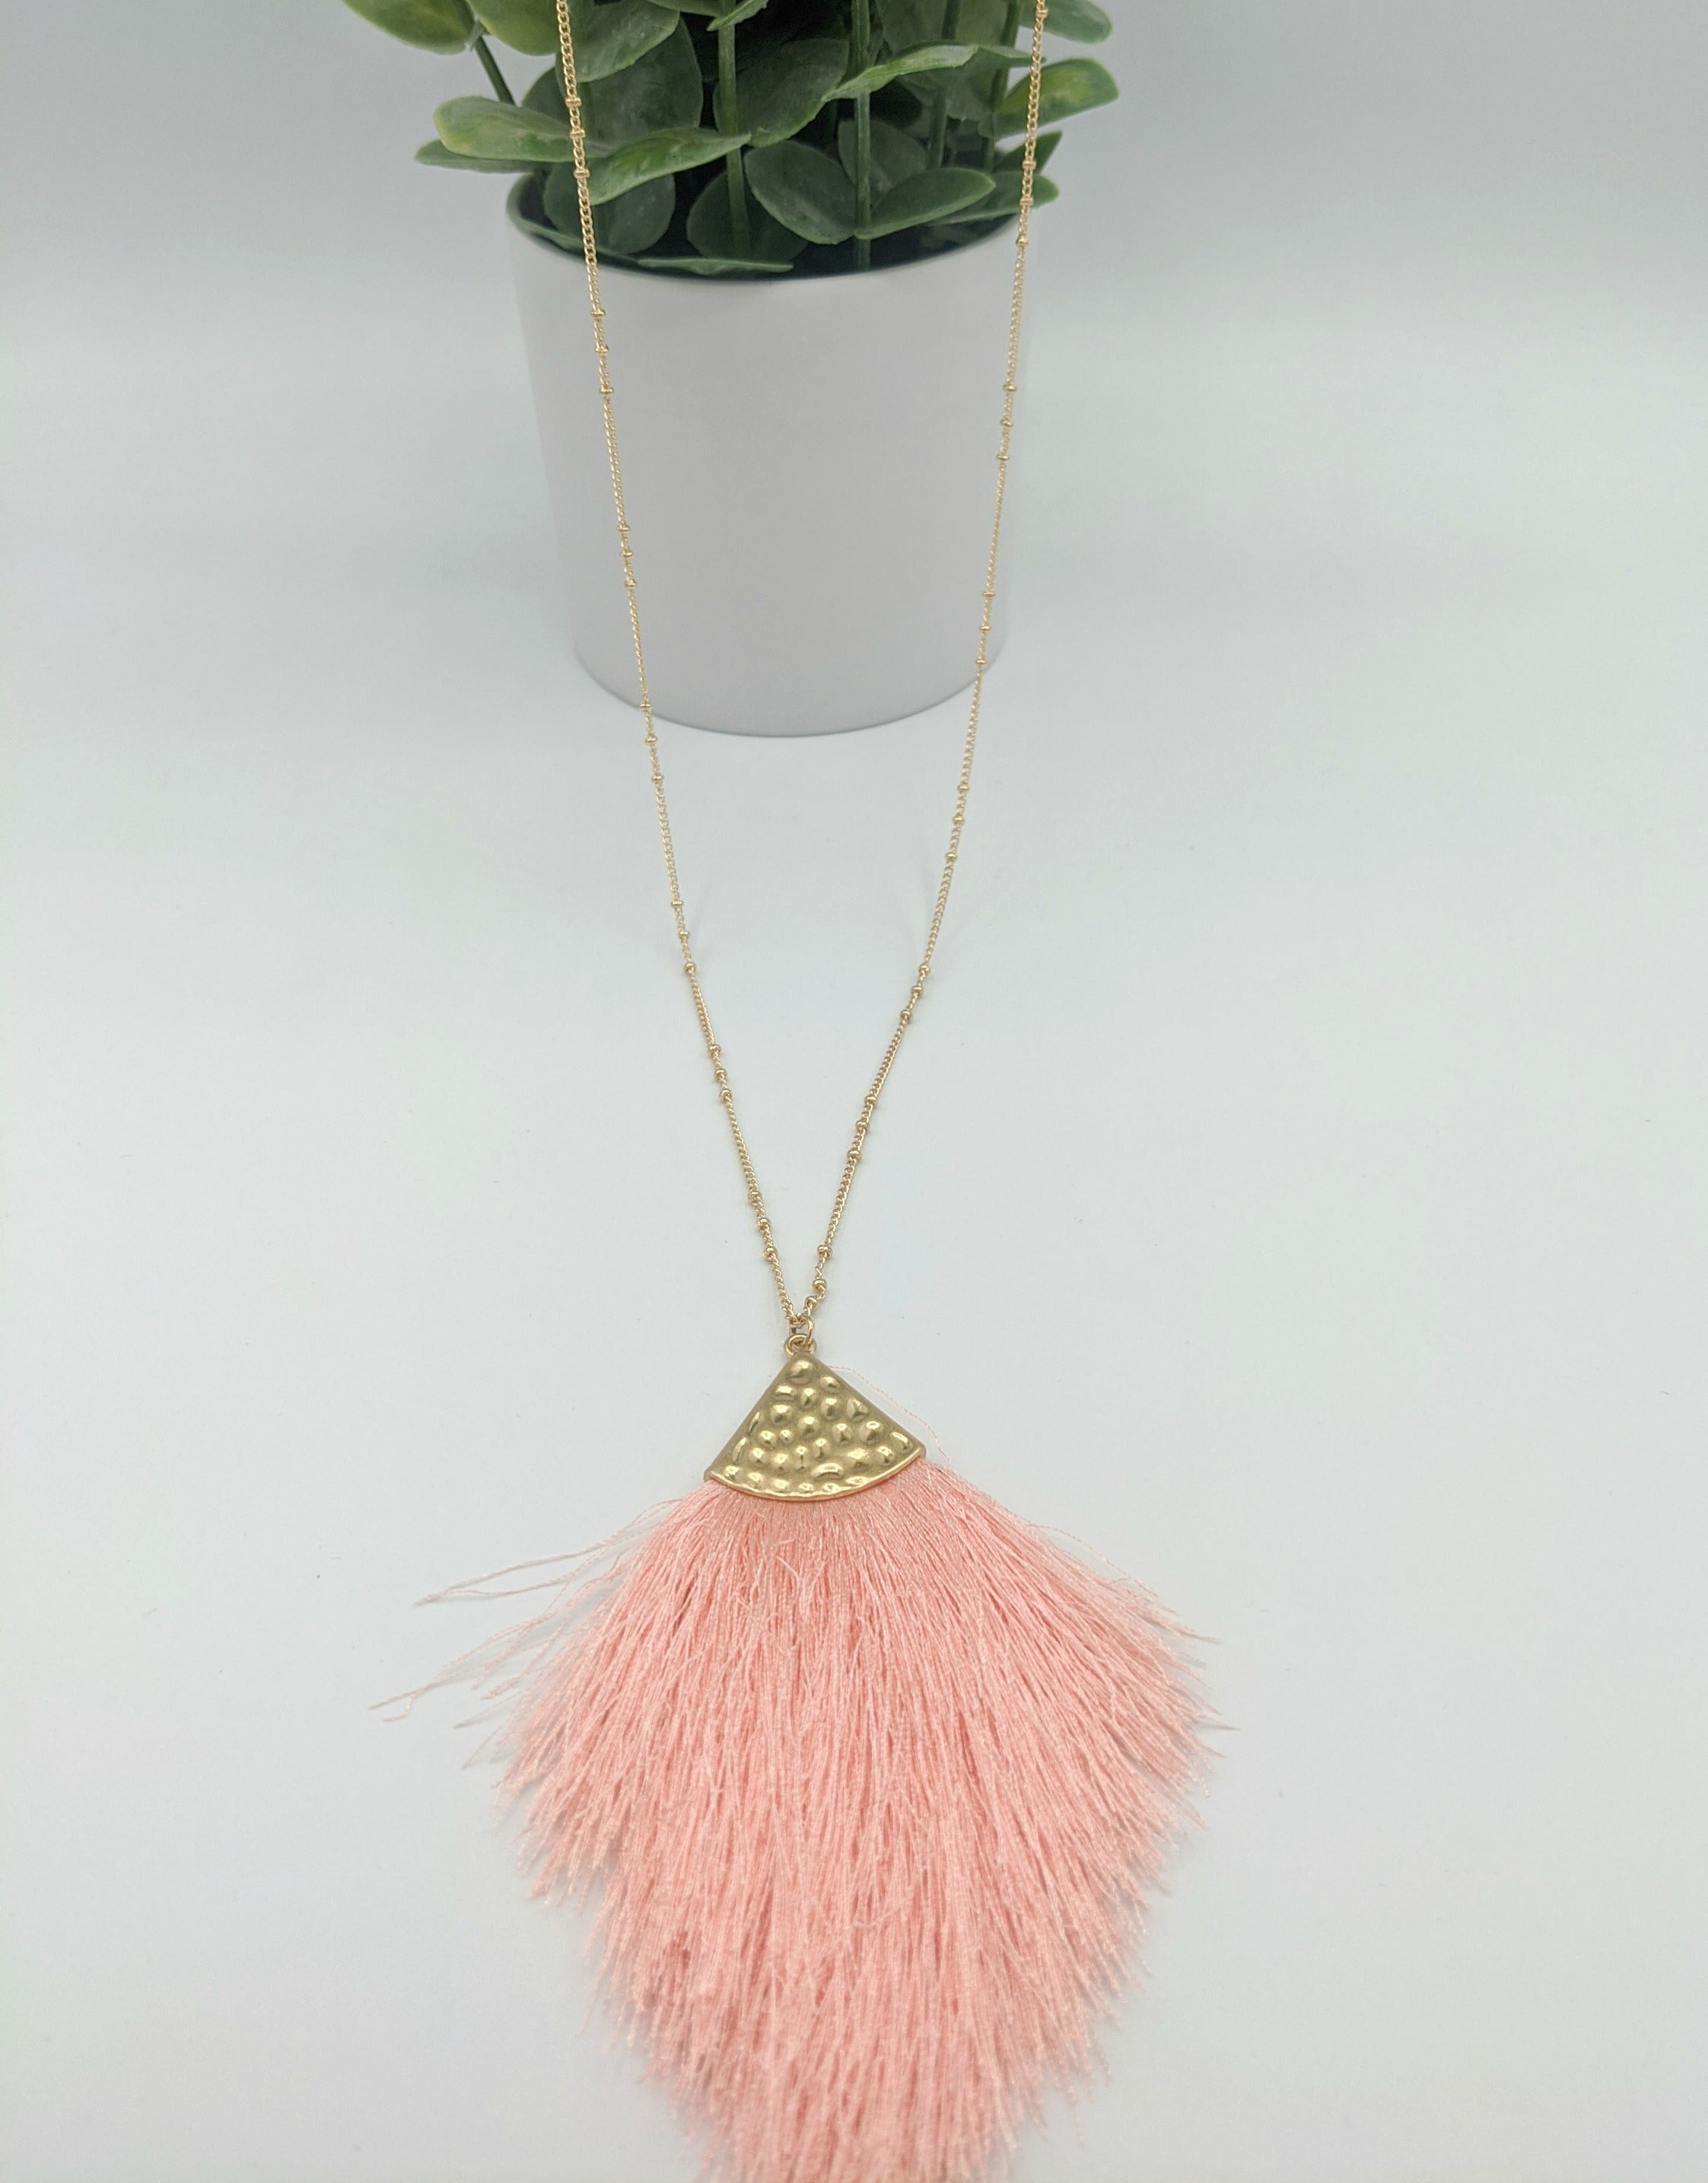 Jenna Fringe Necklace - Coral